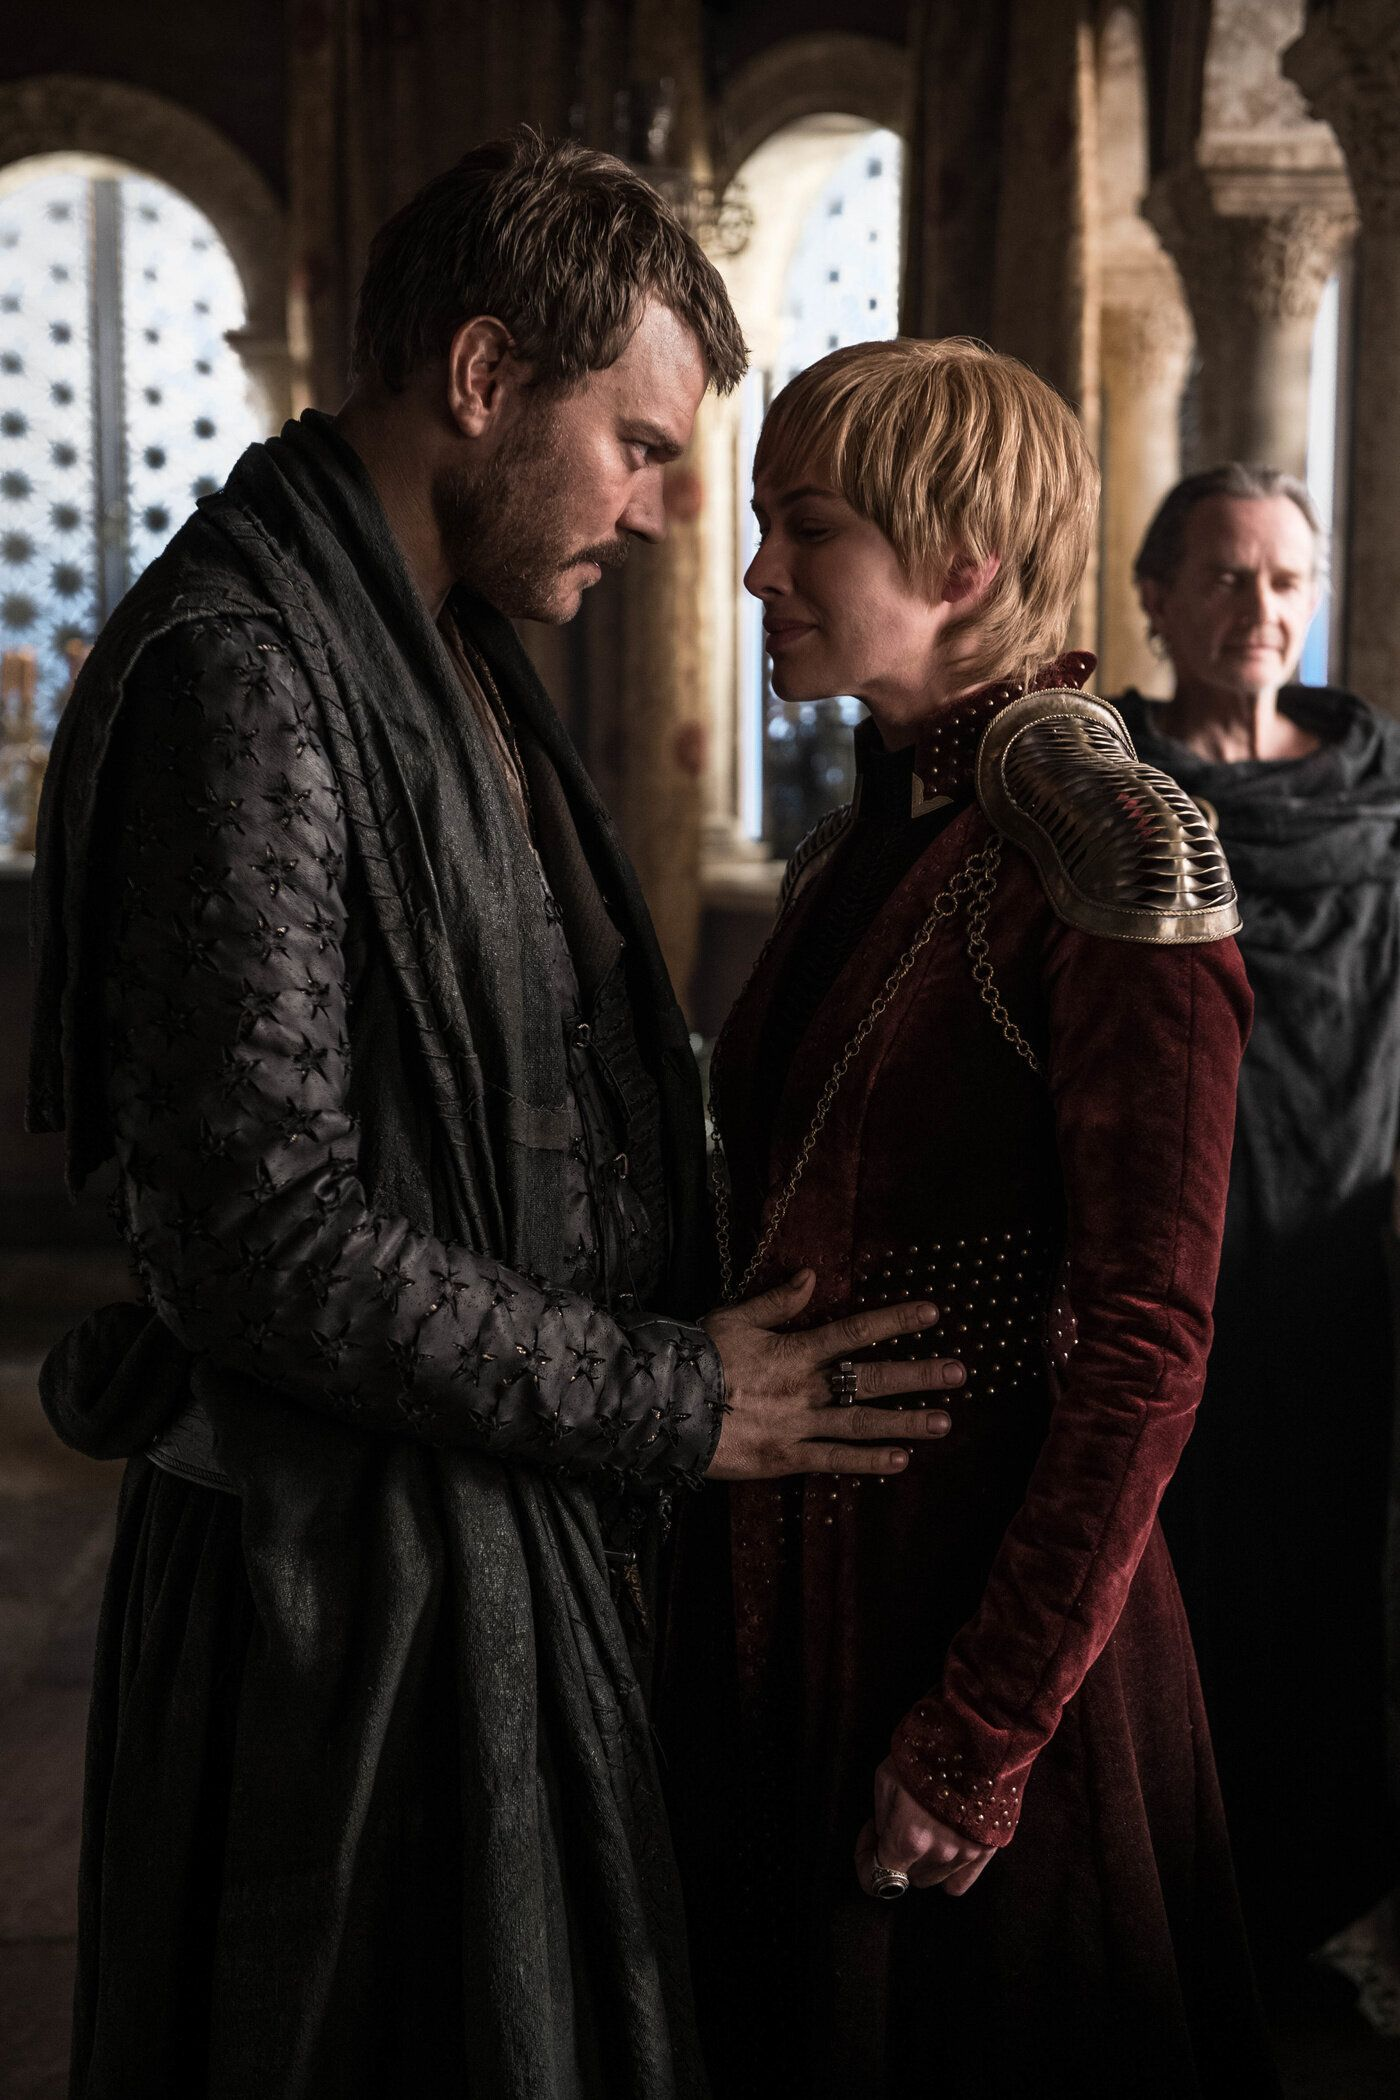 Cersei just hoping Maury isn't going to bust in with the DNA